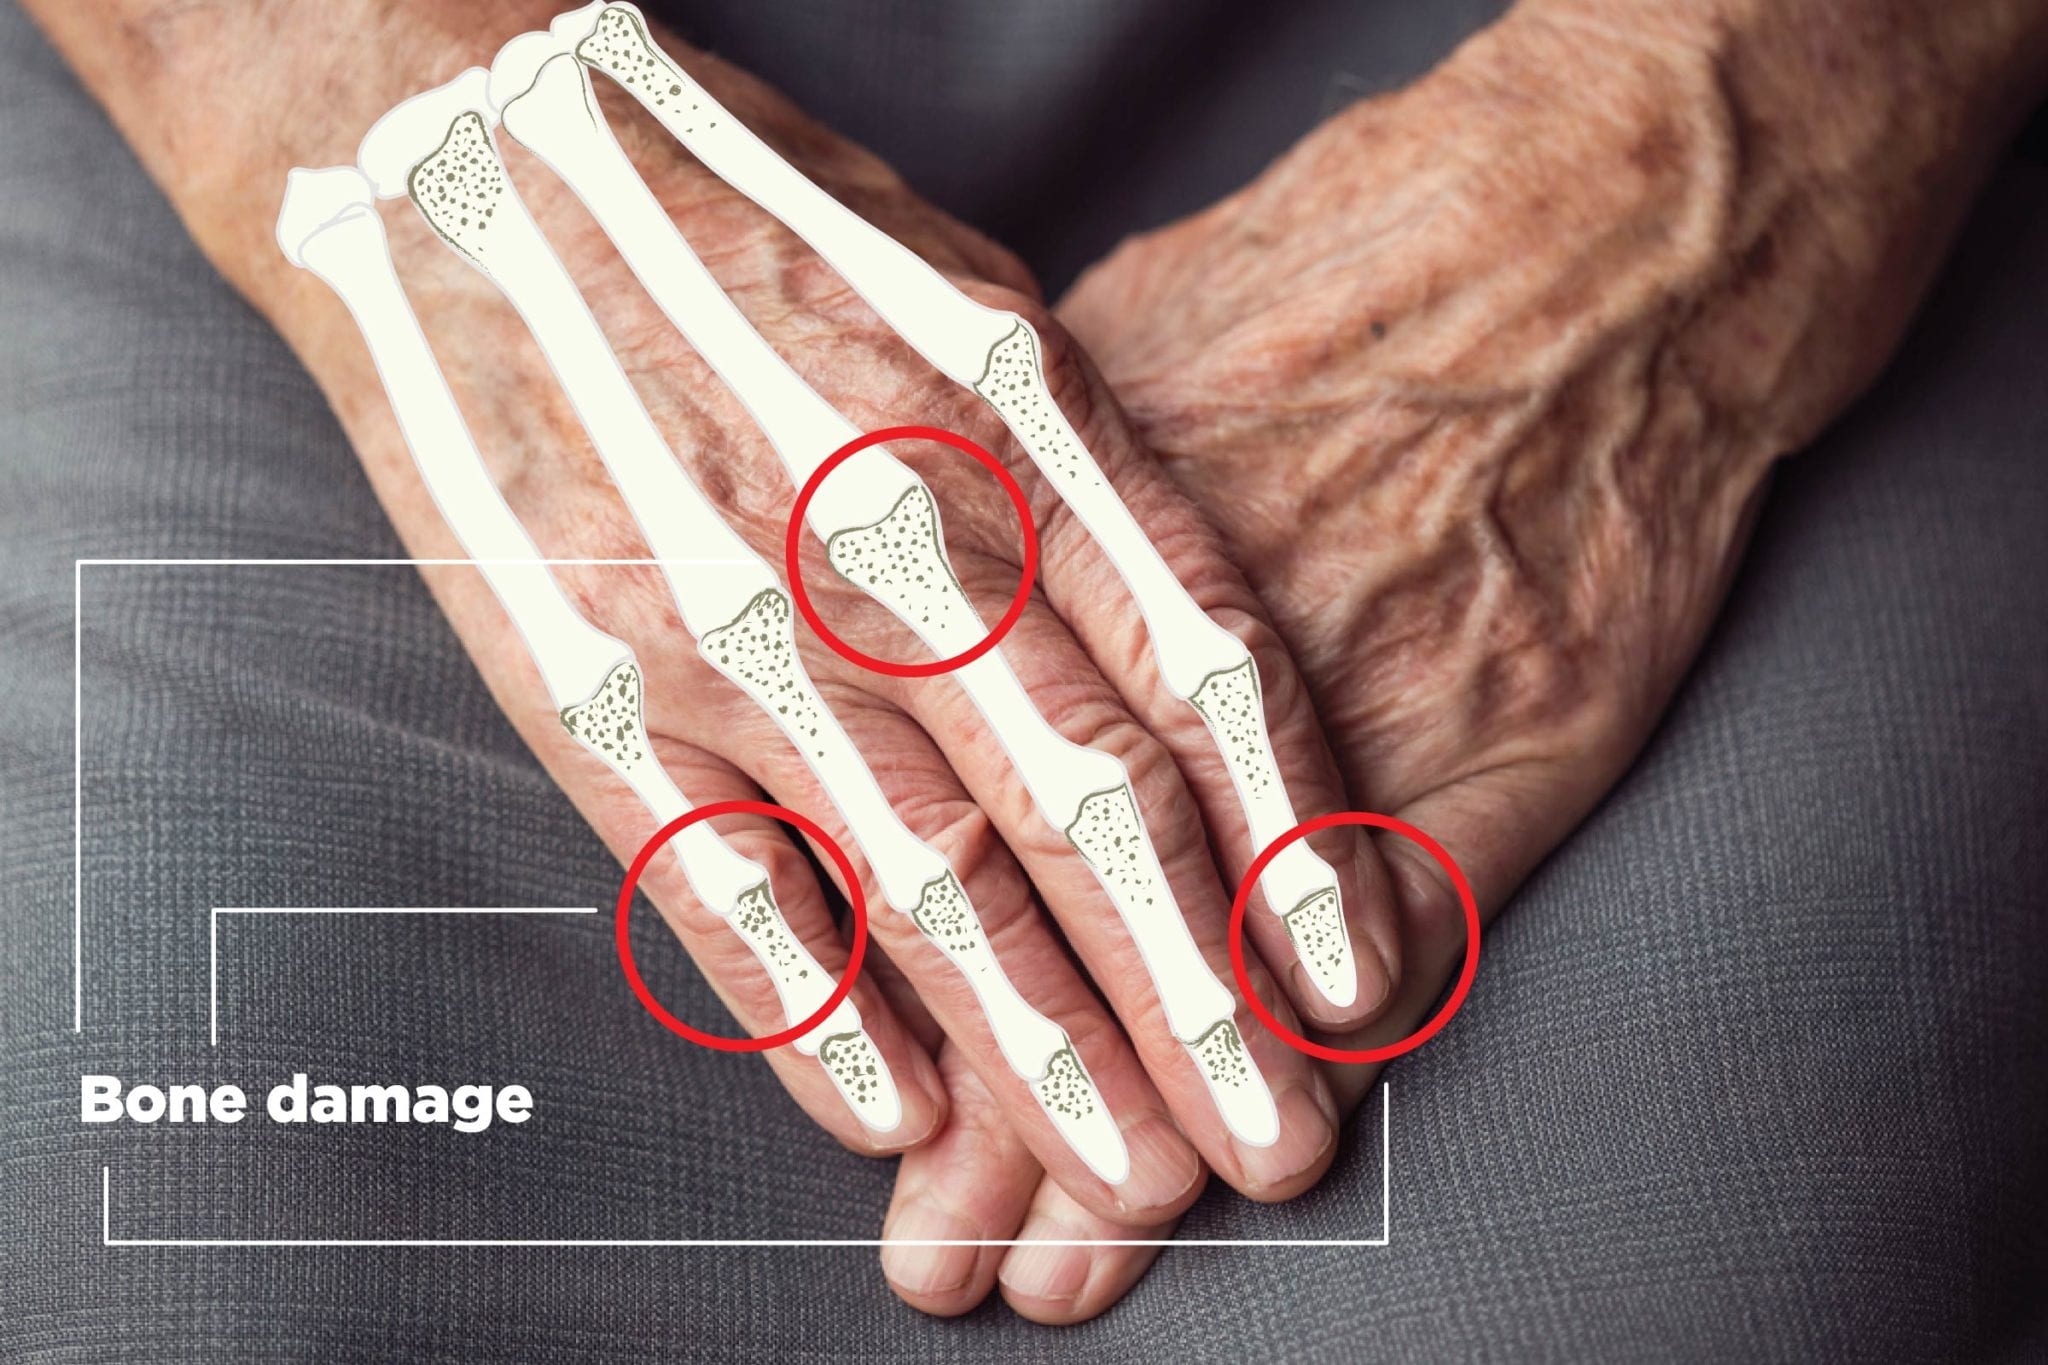 New Study Psoriatic Arthritis Can Cause Different Kinds Of Bone Damage And Surprisingly Psoriasis Might Too Creakyjoints